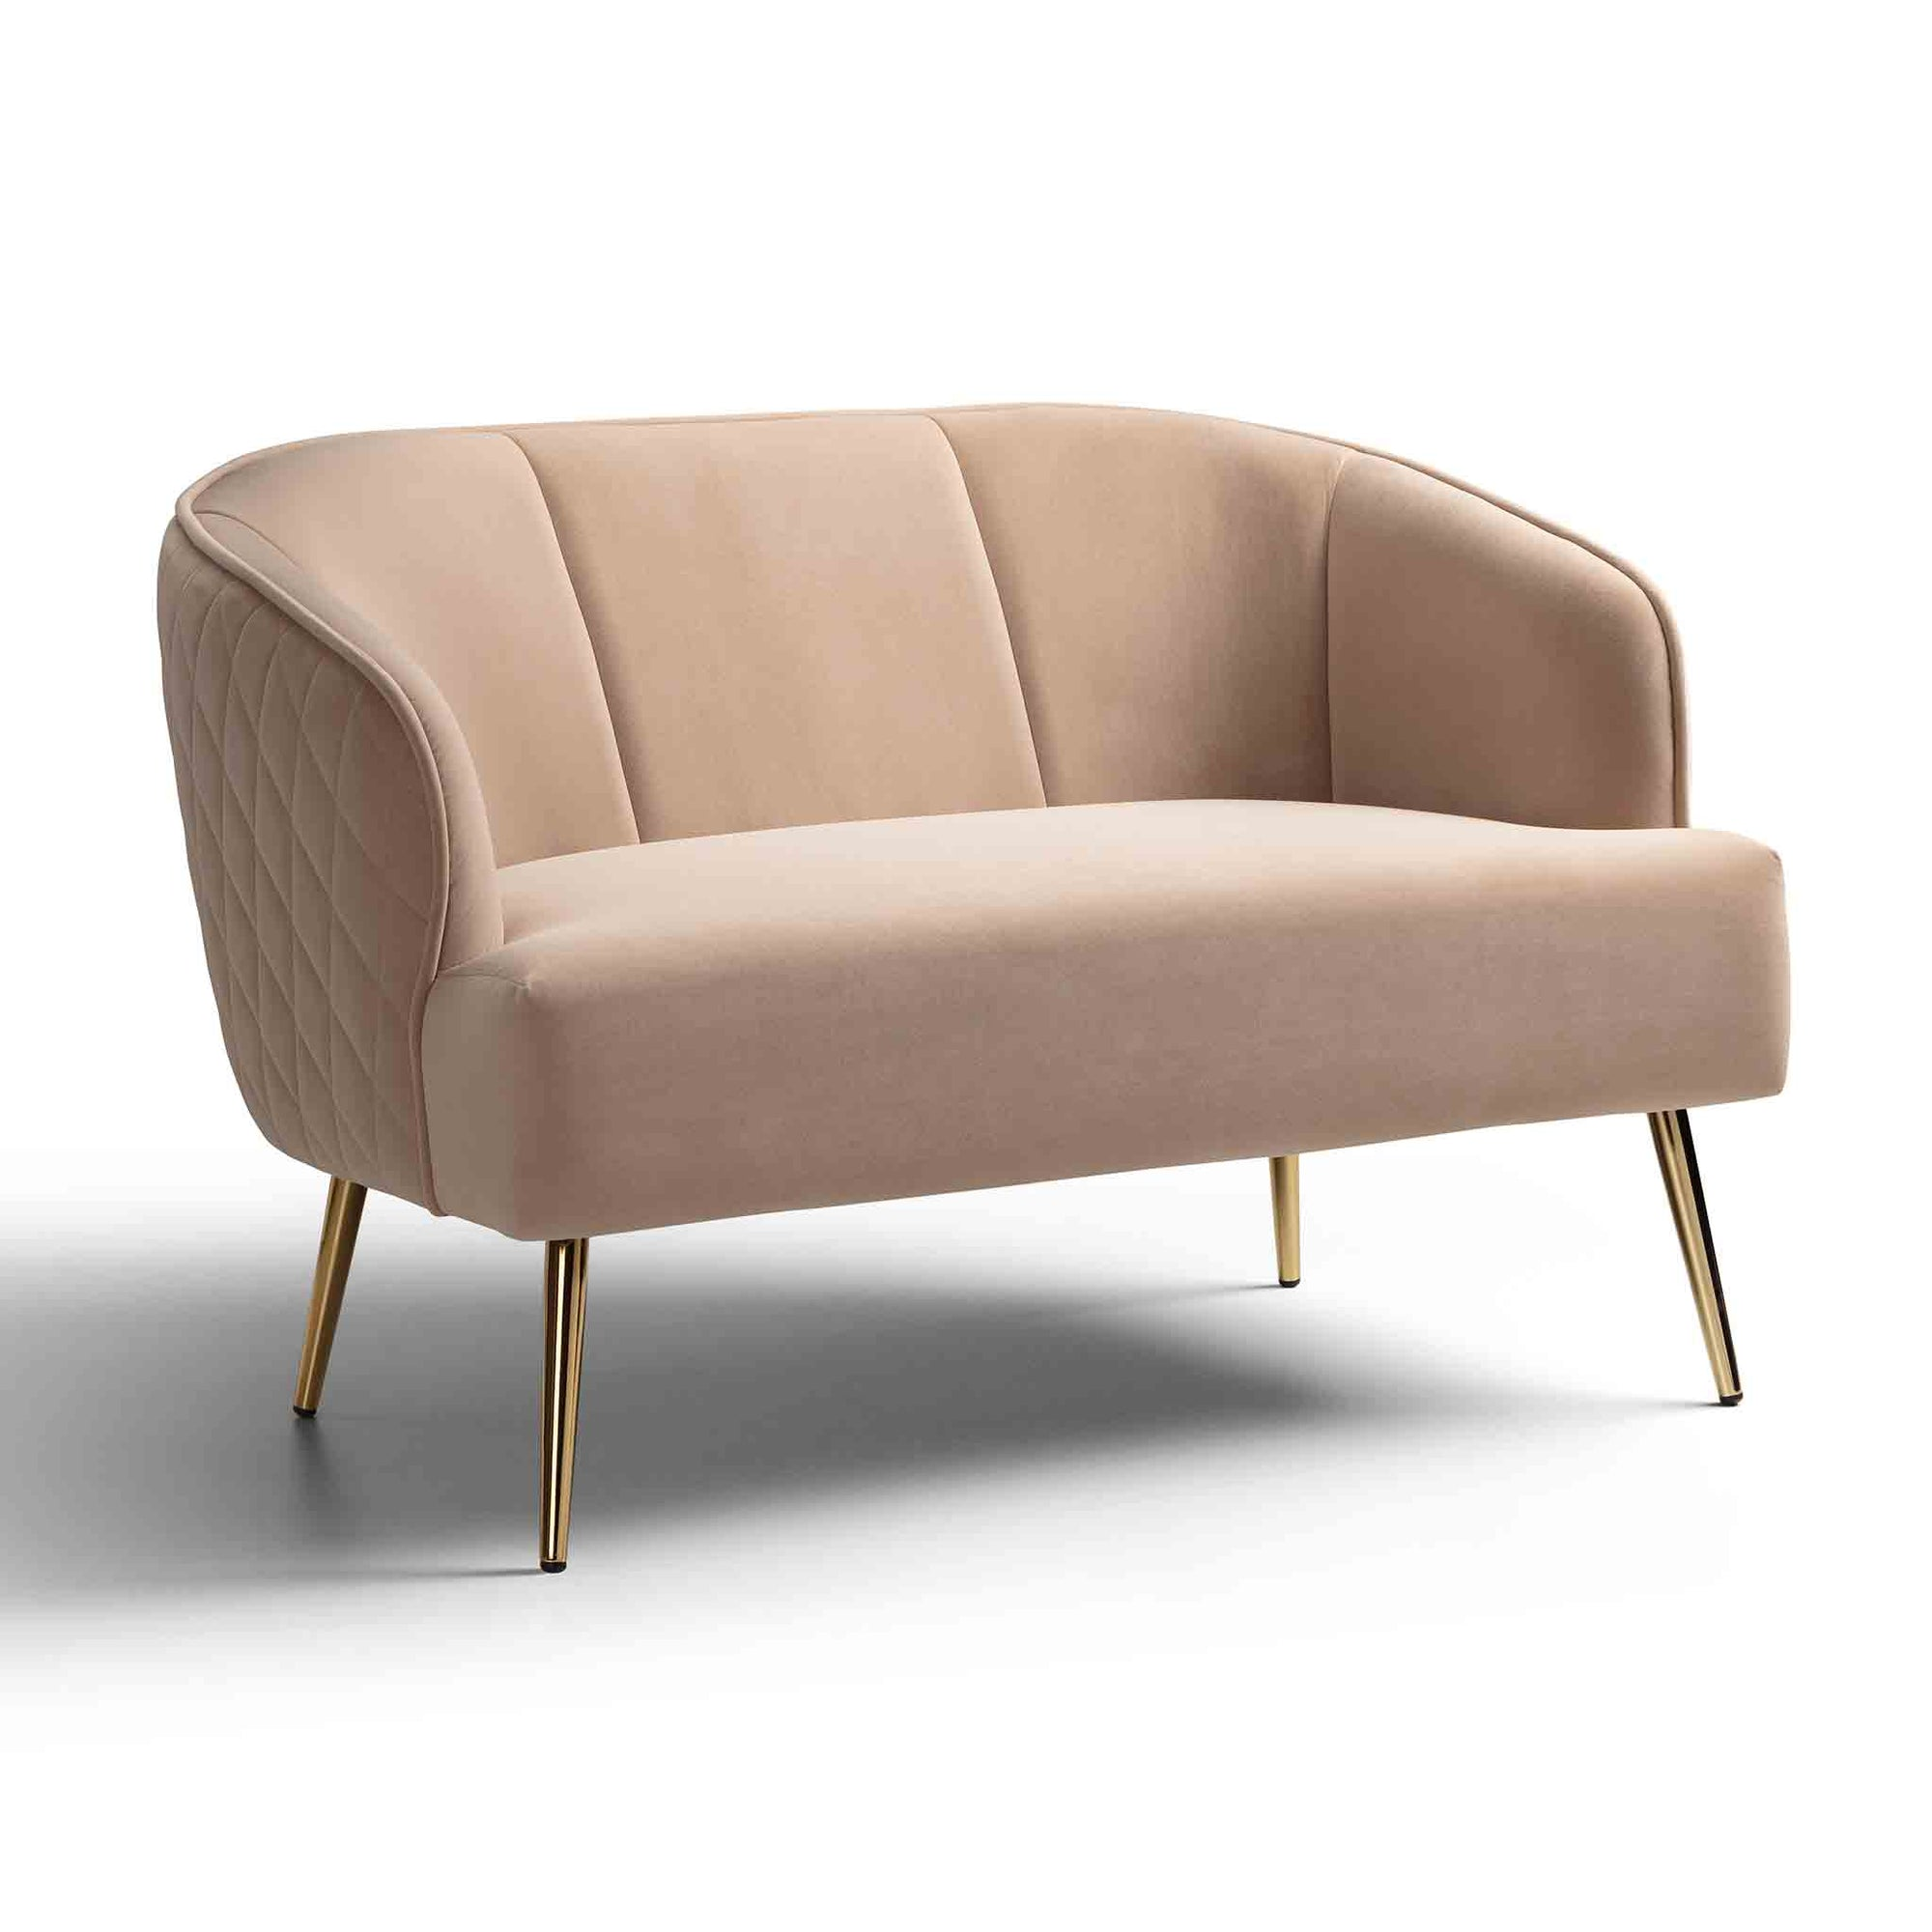 Myla Almond Two Seater Chair from Roseland Furniture